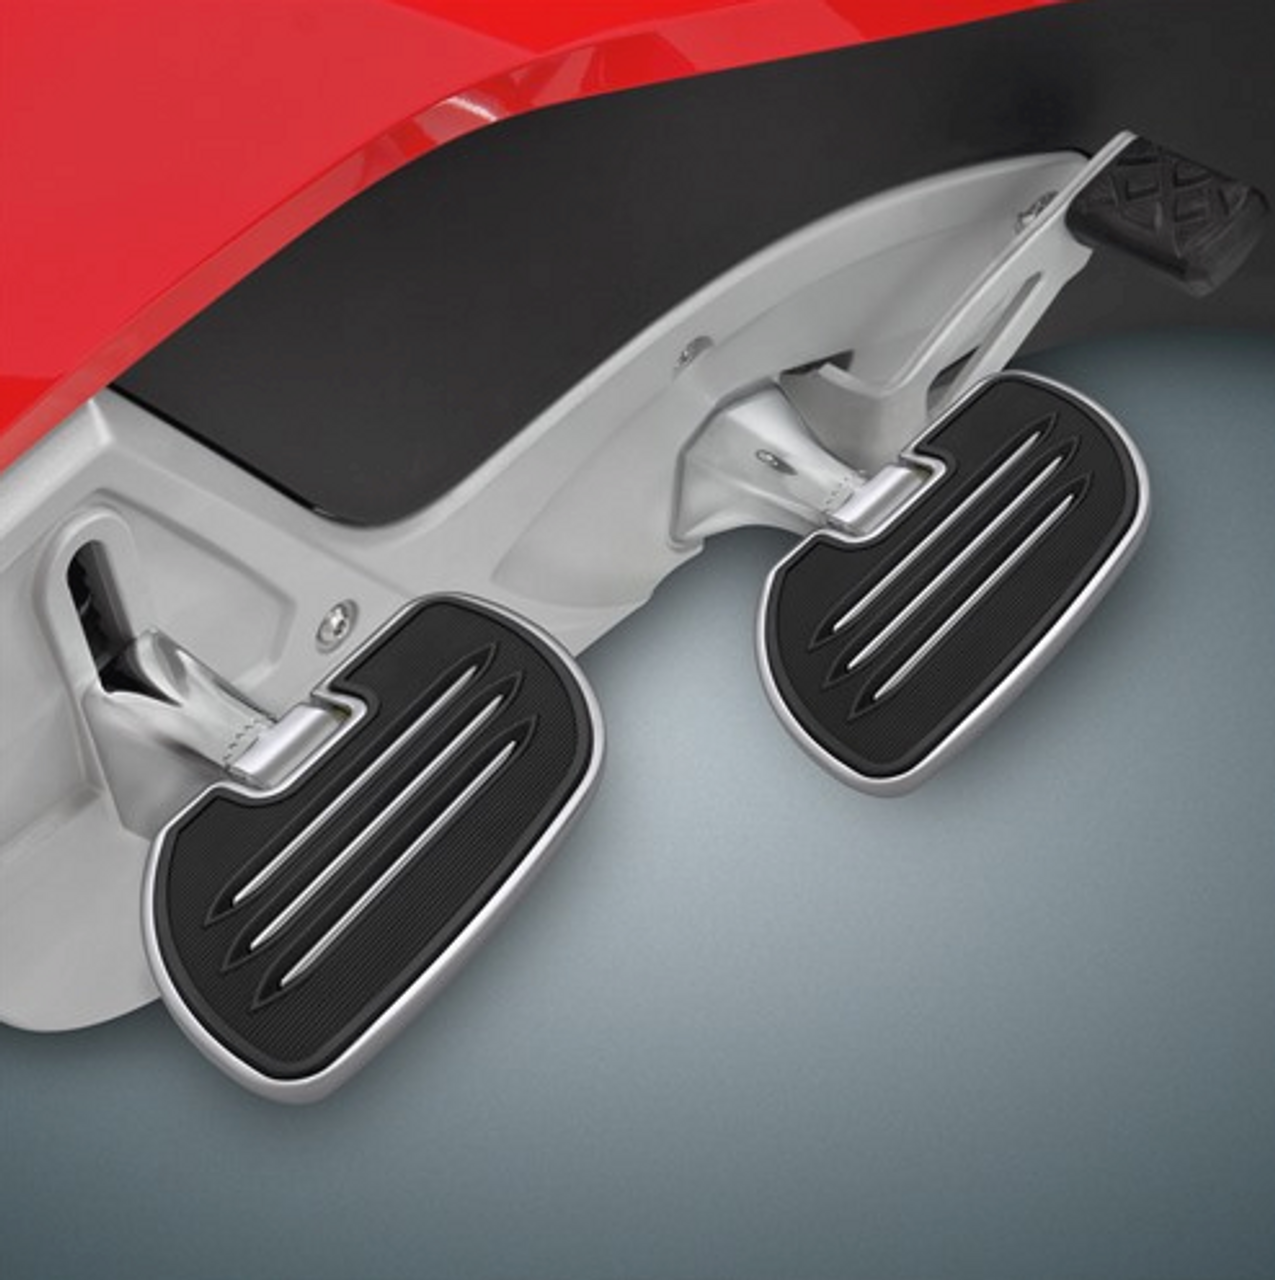 COMMANDER PASSENGER FLOORBOARDS for the CAN AM SPYDER RT (SC-41-185) (Commander Passenger Board Shown With 41-186 Driver Board On Spyder RT) (SOLD SEPARATELY)